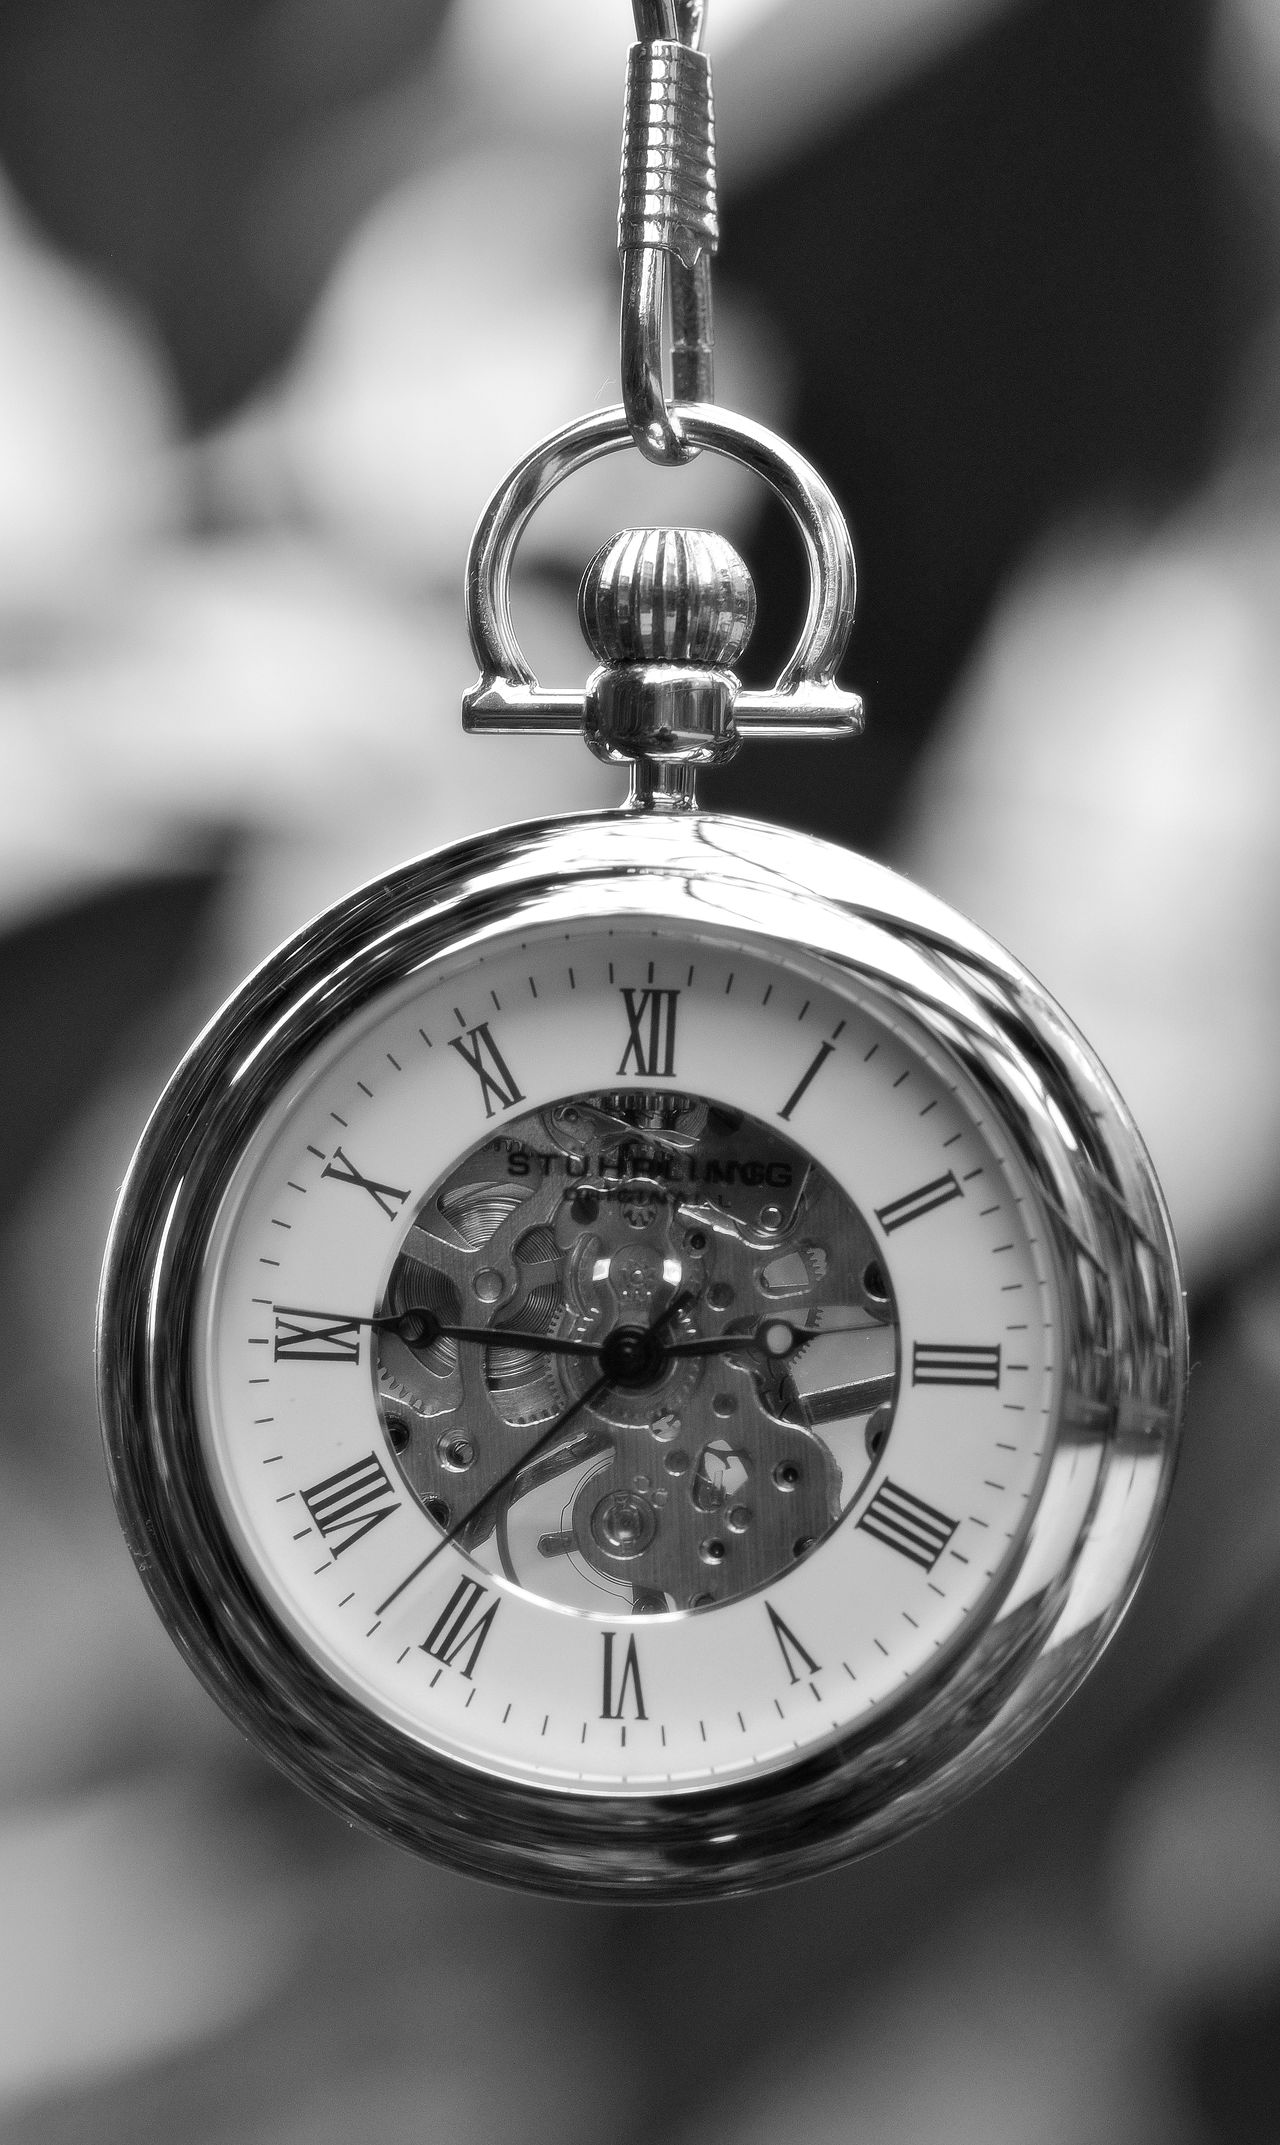 Time after time ... Clock Clock Face Clockworks Close-up Instrument Of Time Minute Hand Old-fashioned Pocket Watch Roman Numeral Technology Time